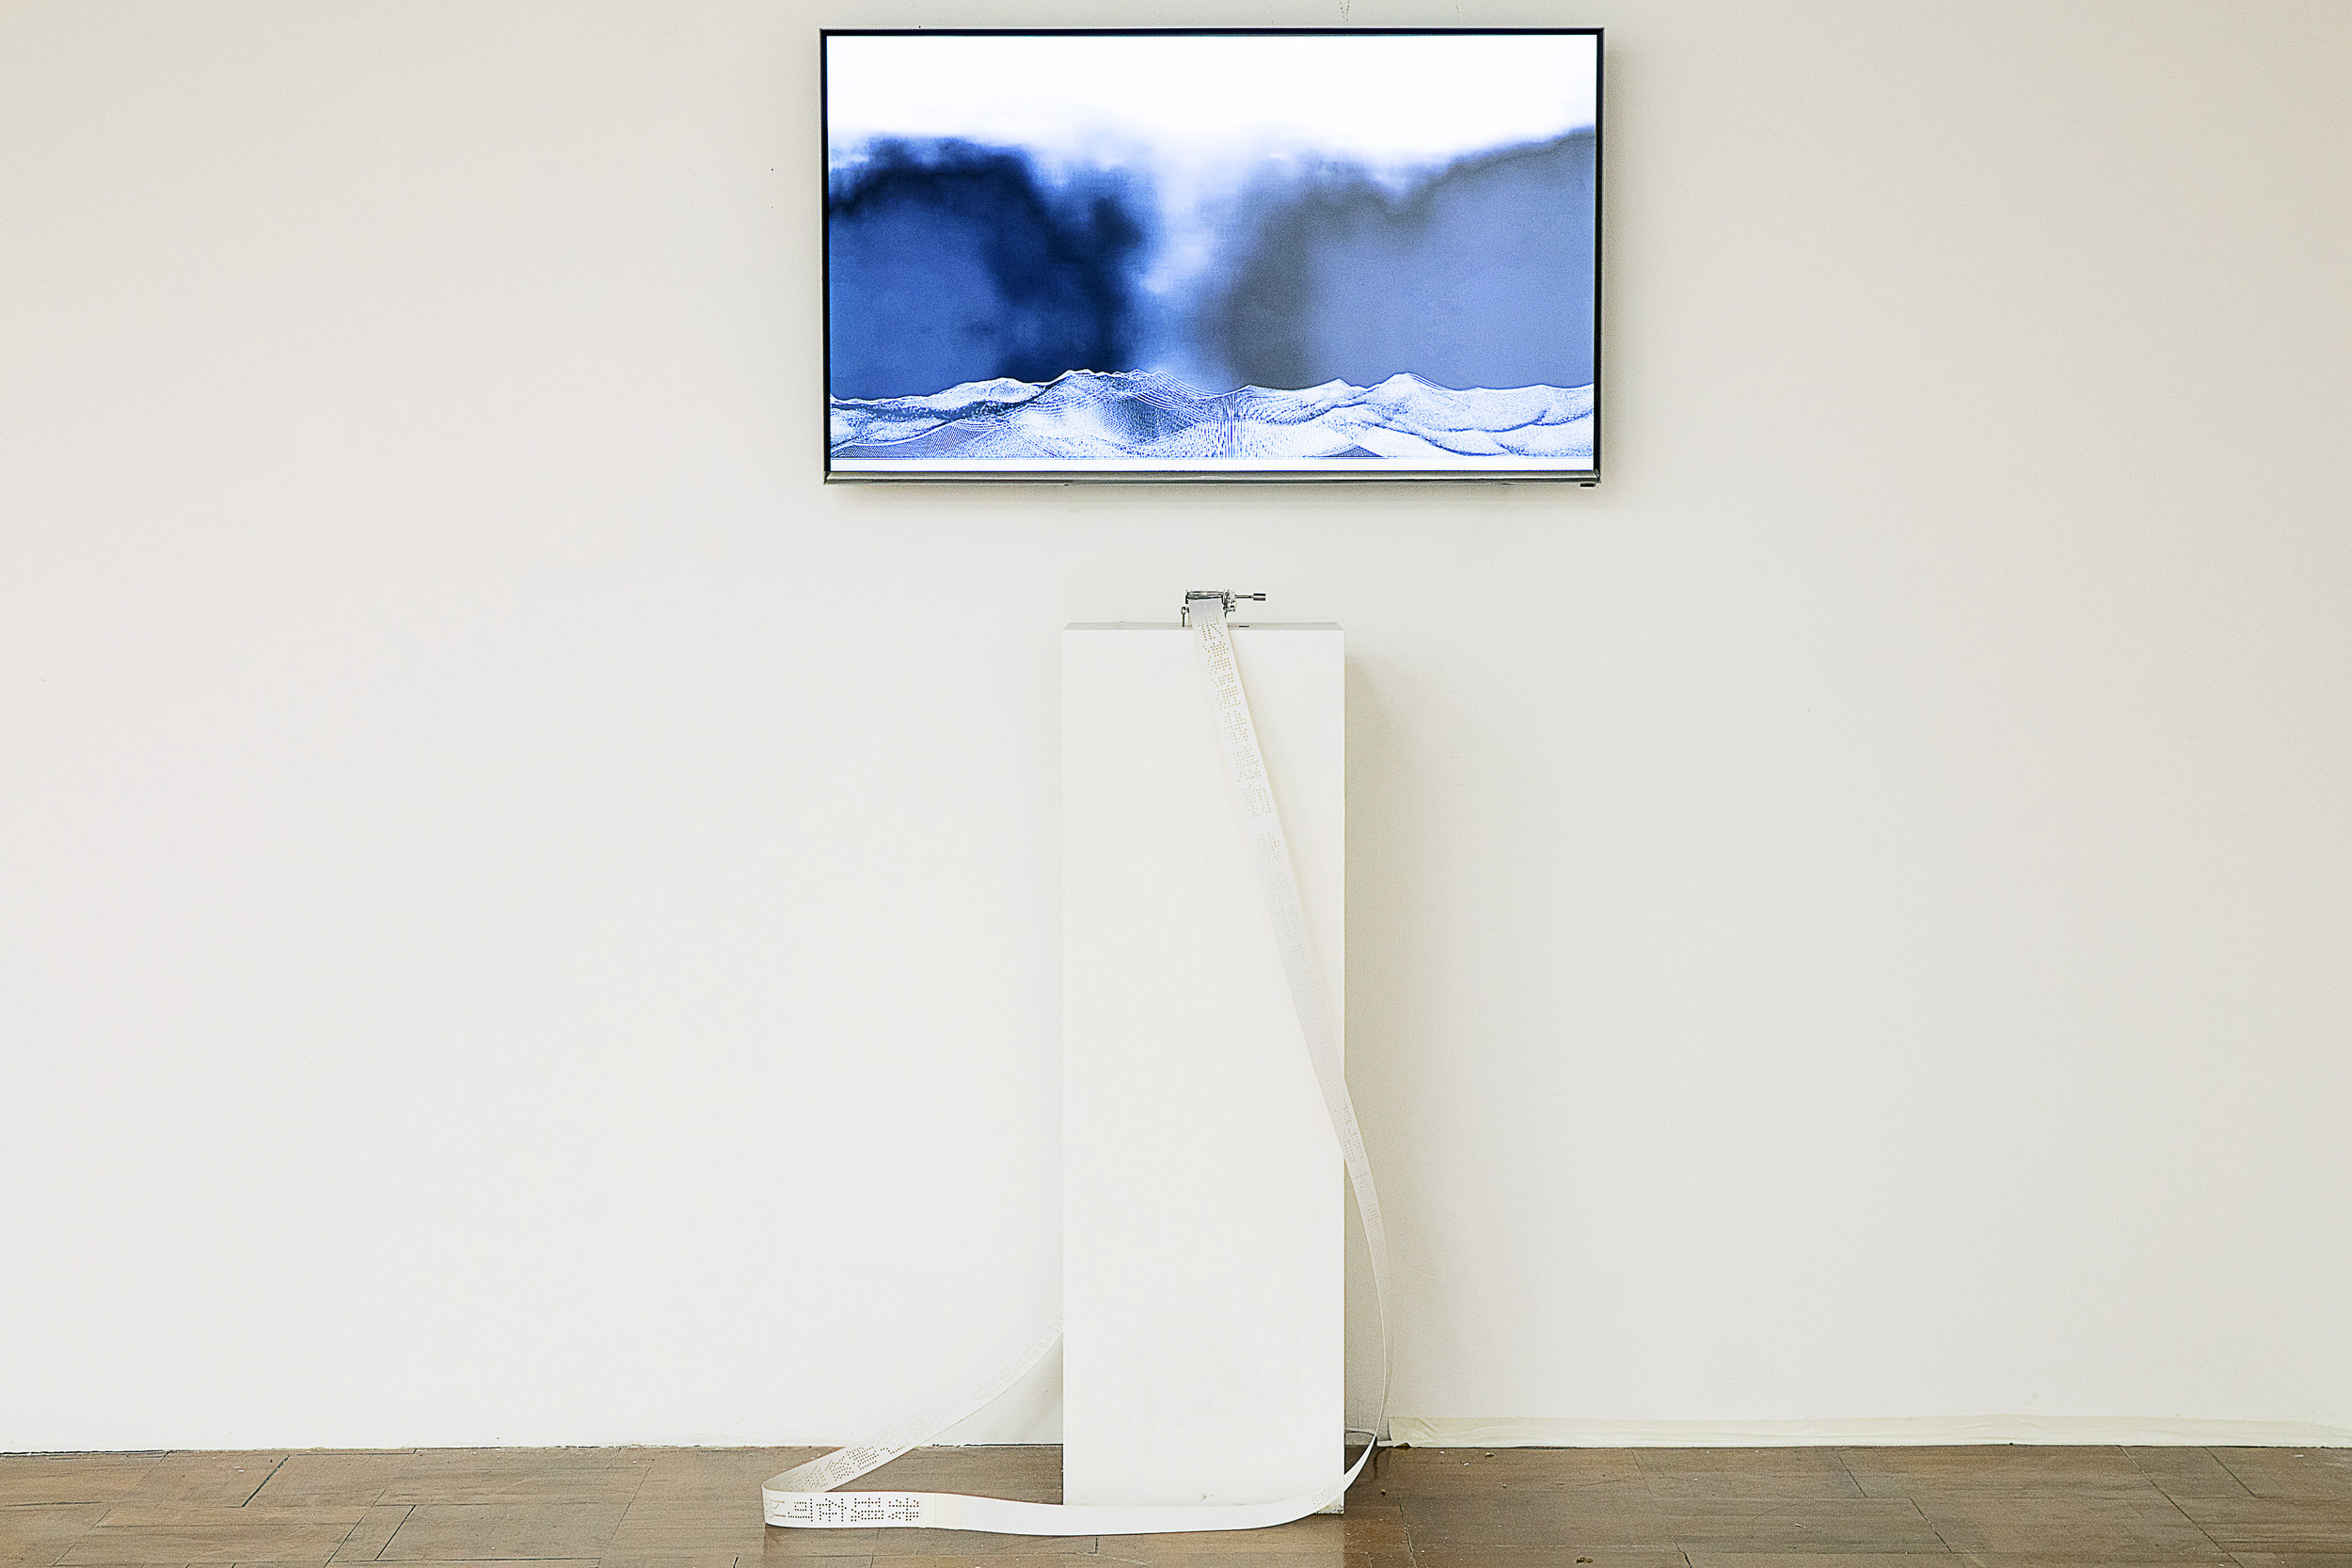 Zac Choy Kam Ming, 'I Can Now Do What Others Deem Tedious', 2018, interactive video installation, size variable. Image courtesy the artist and Fresh Trend.